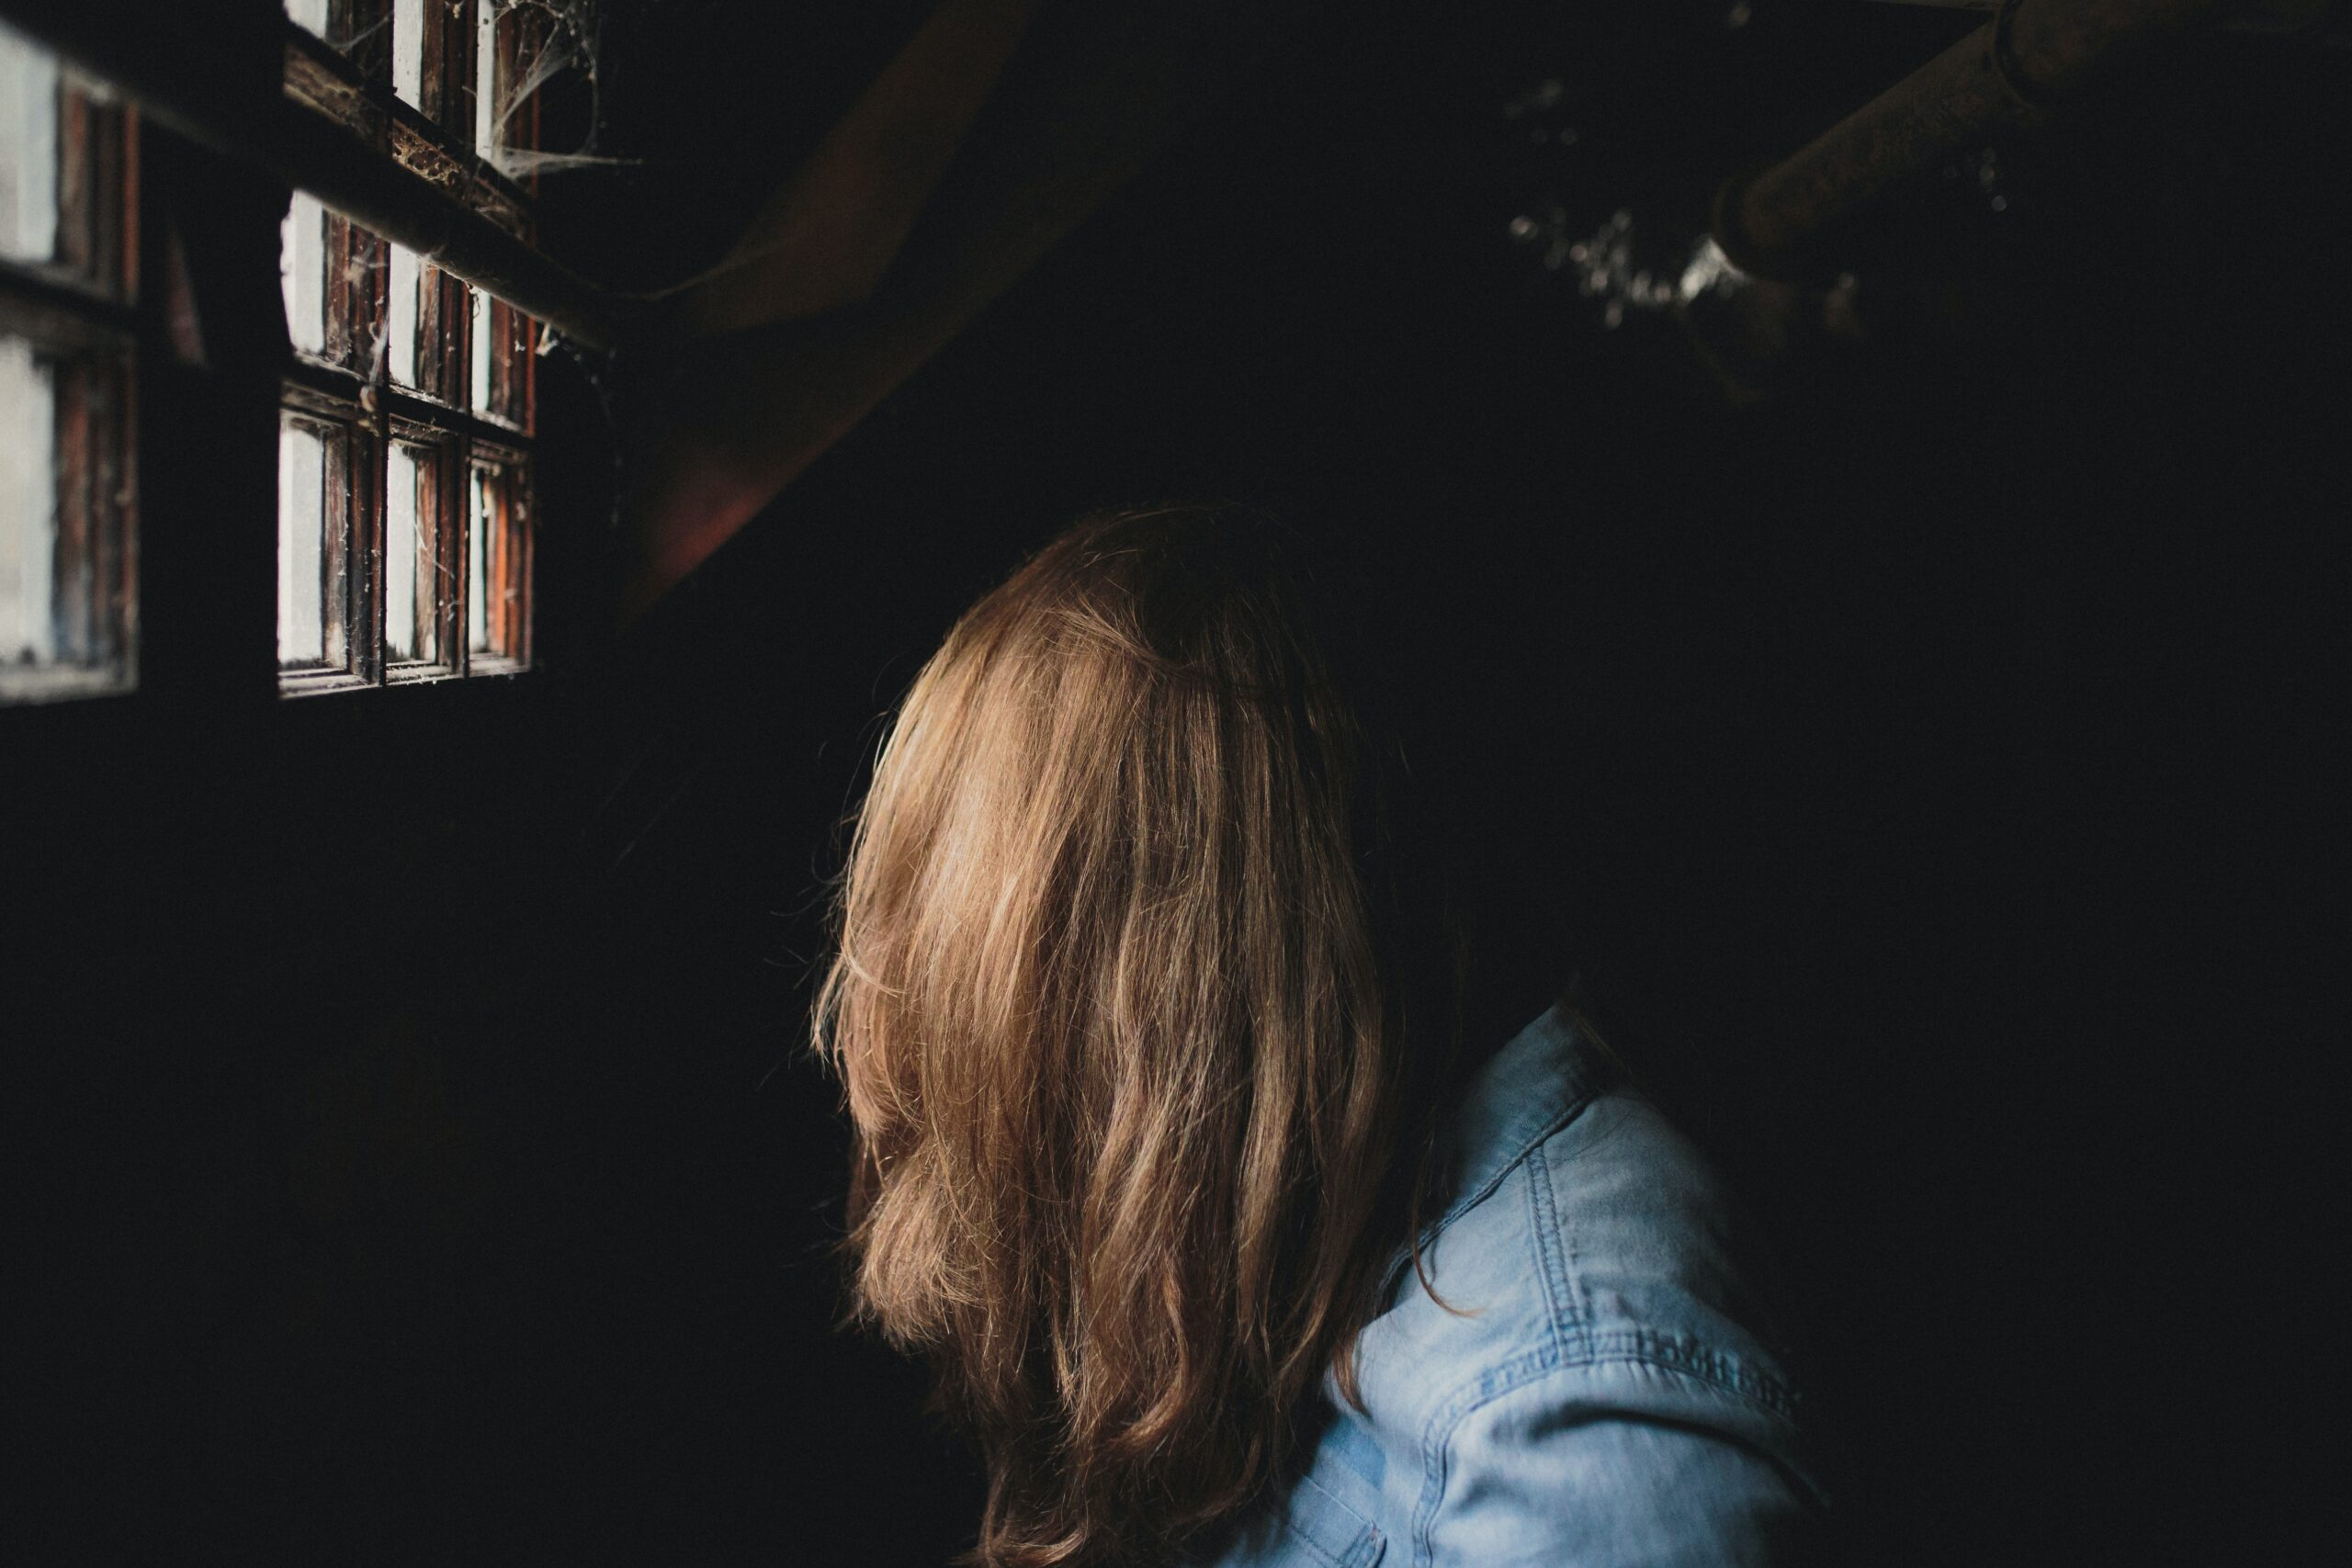 profile of woman with brown hair covering her face looking out window